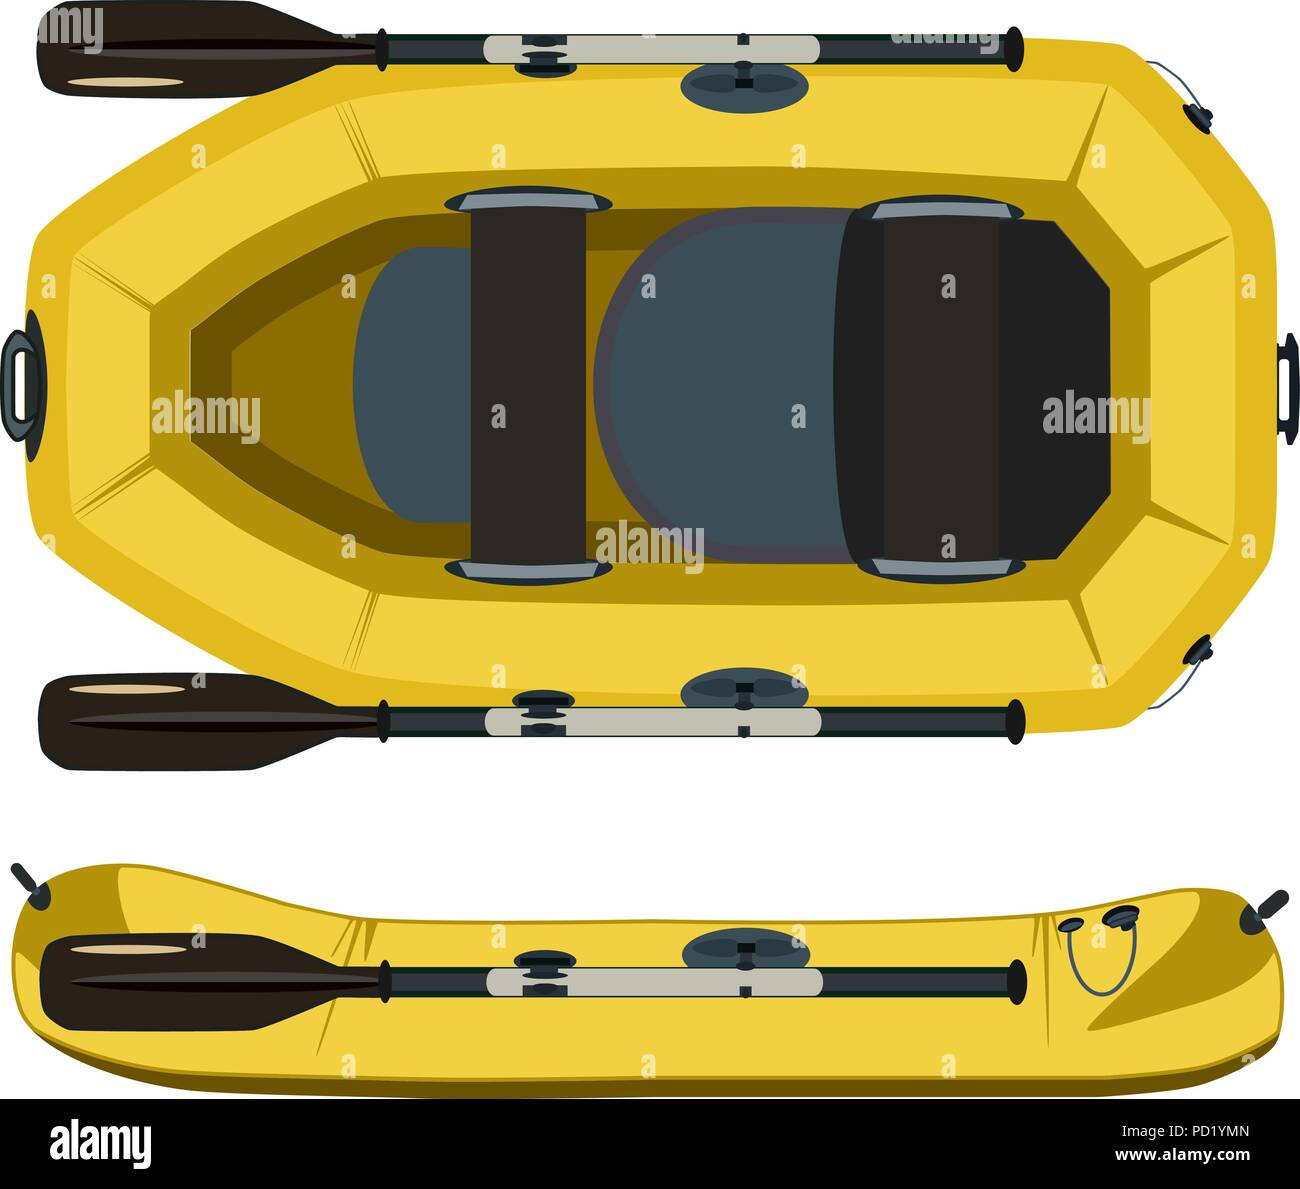 Rafting boat vector flat illustration - Stock Vector